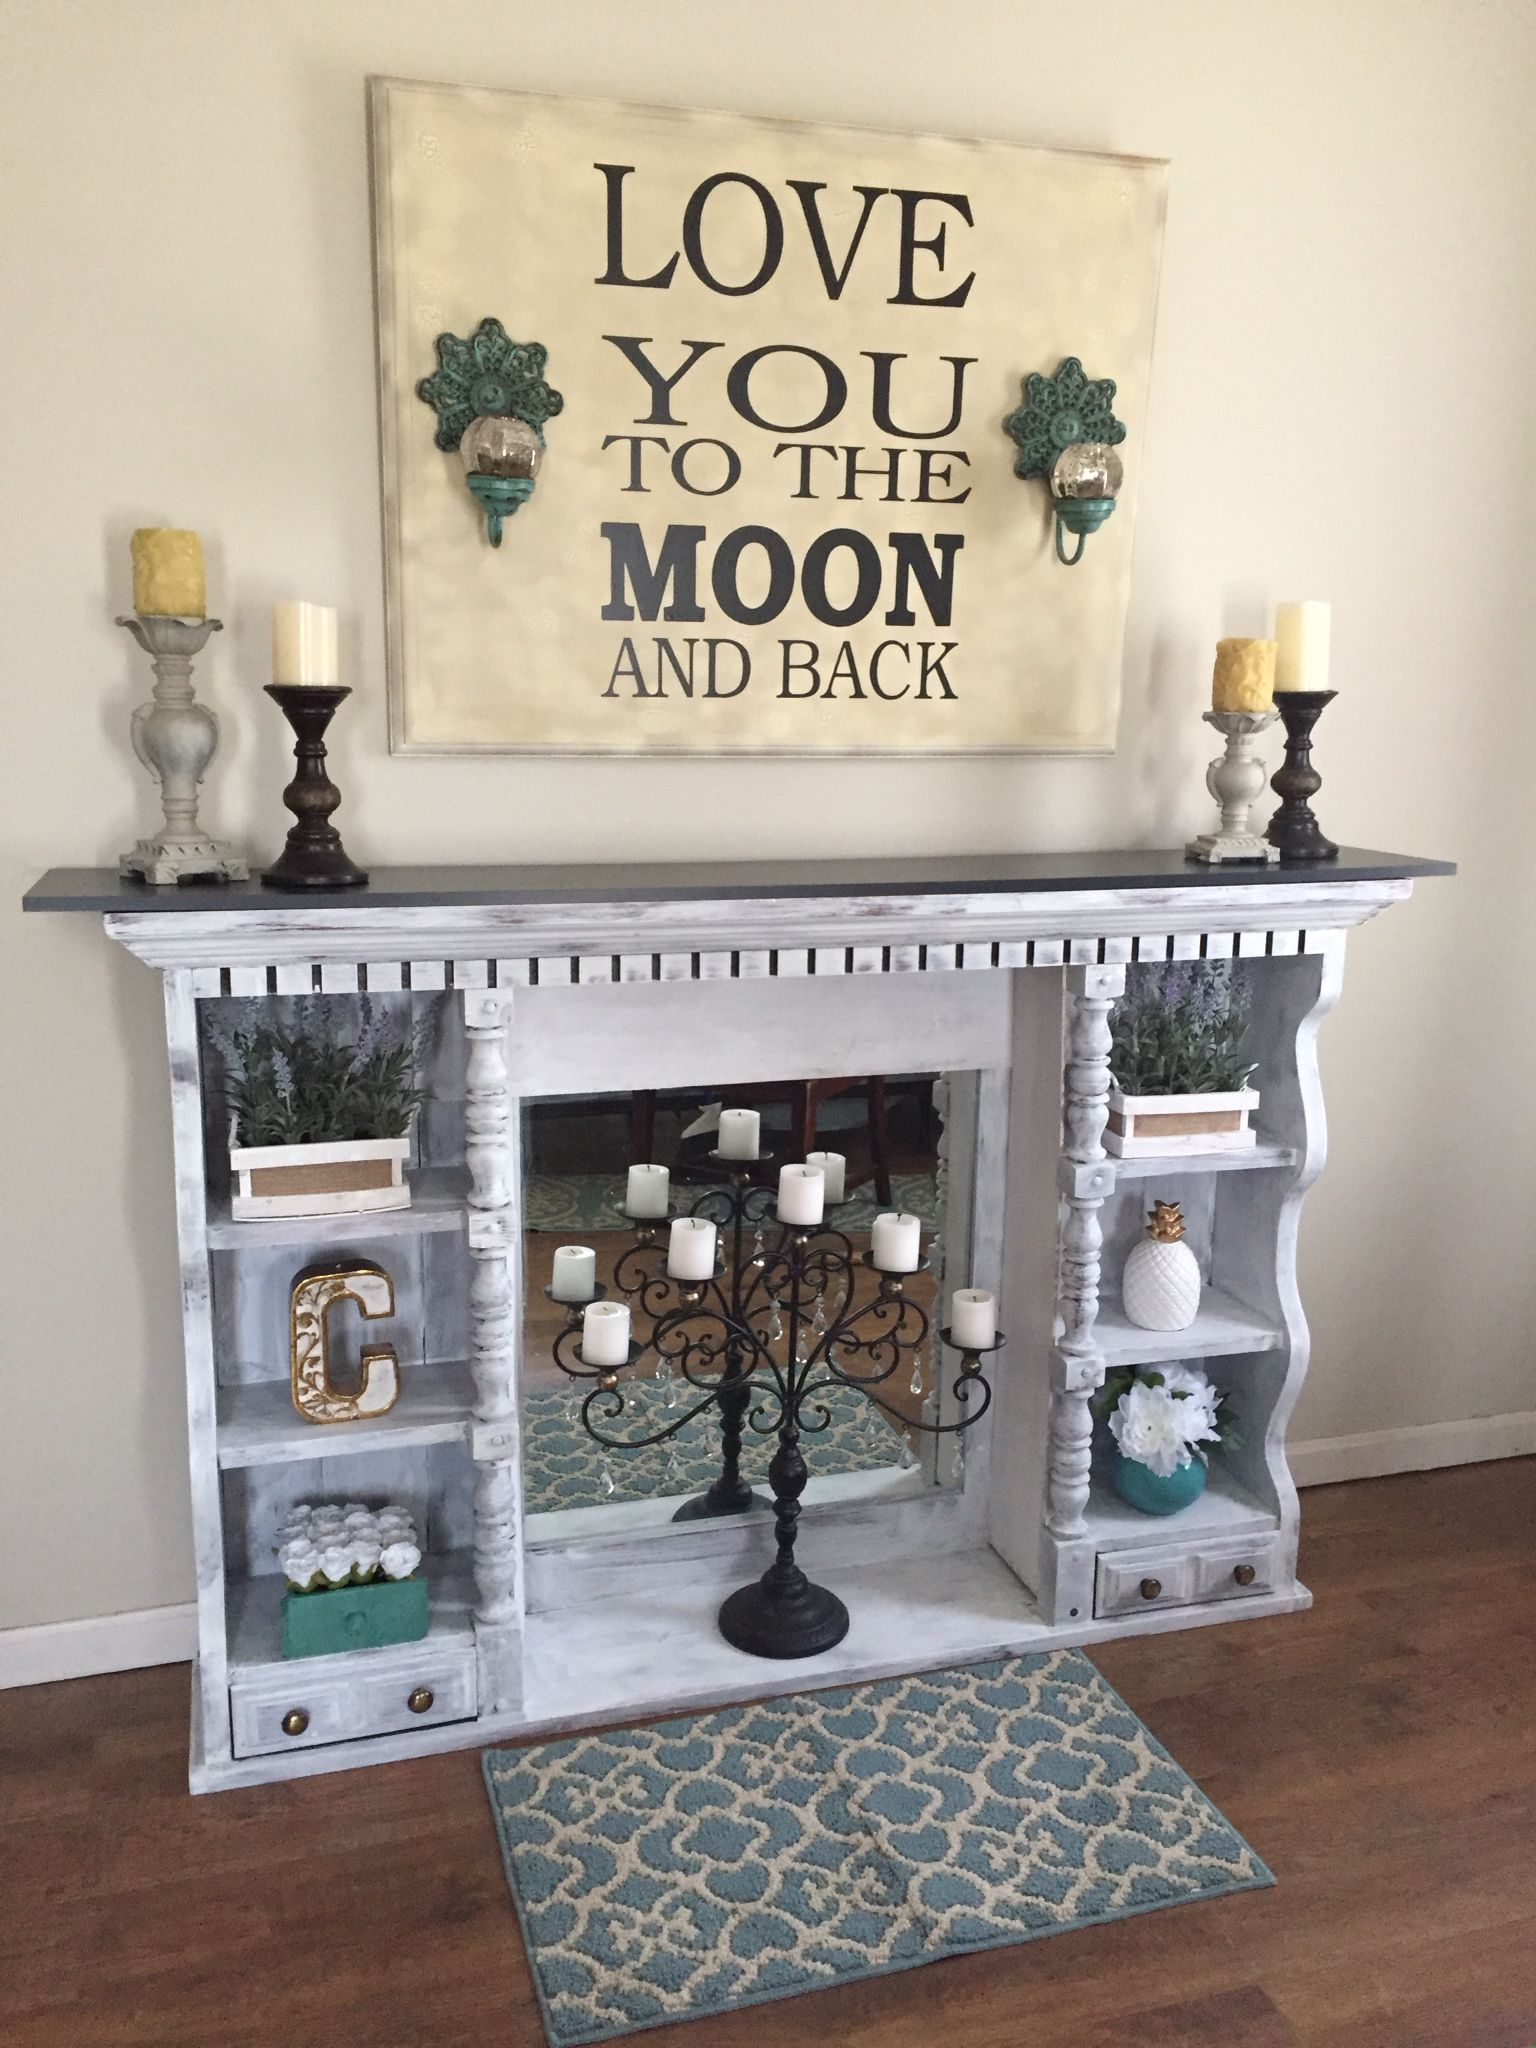 Pin On Repurpose And Reuse